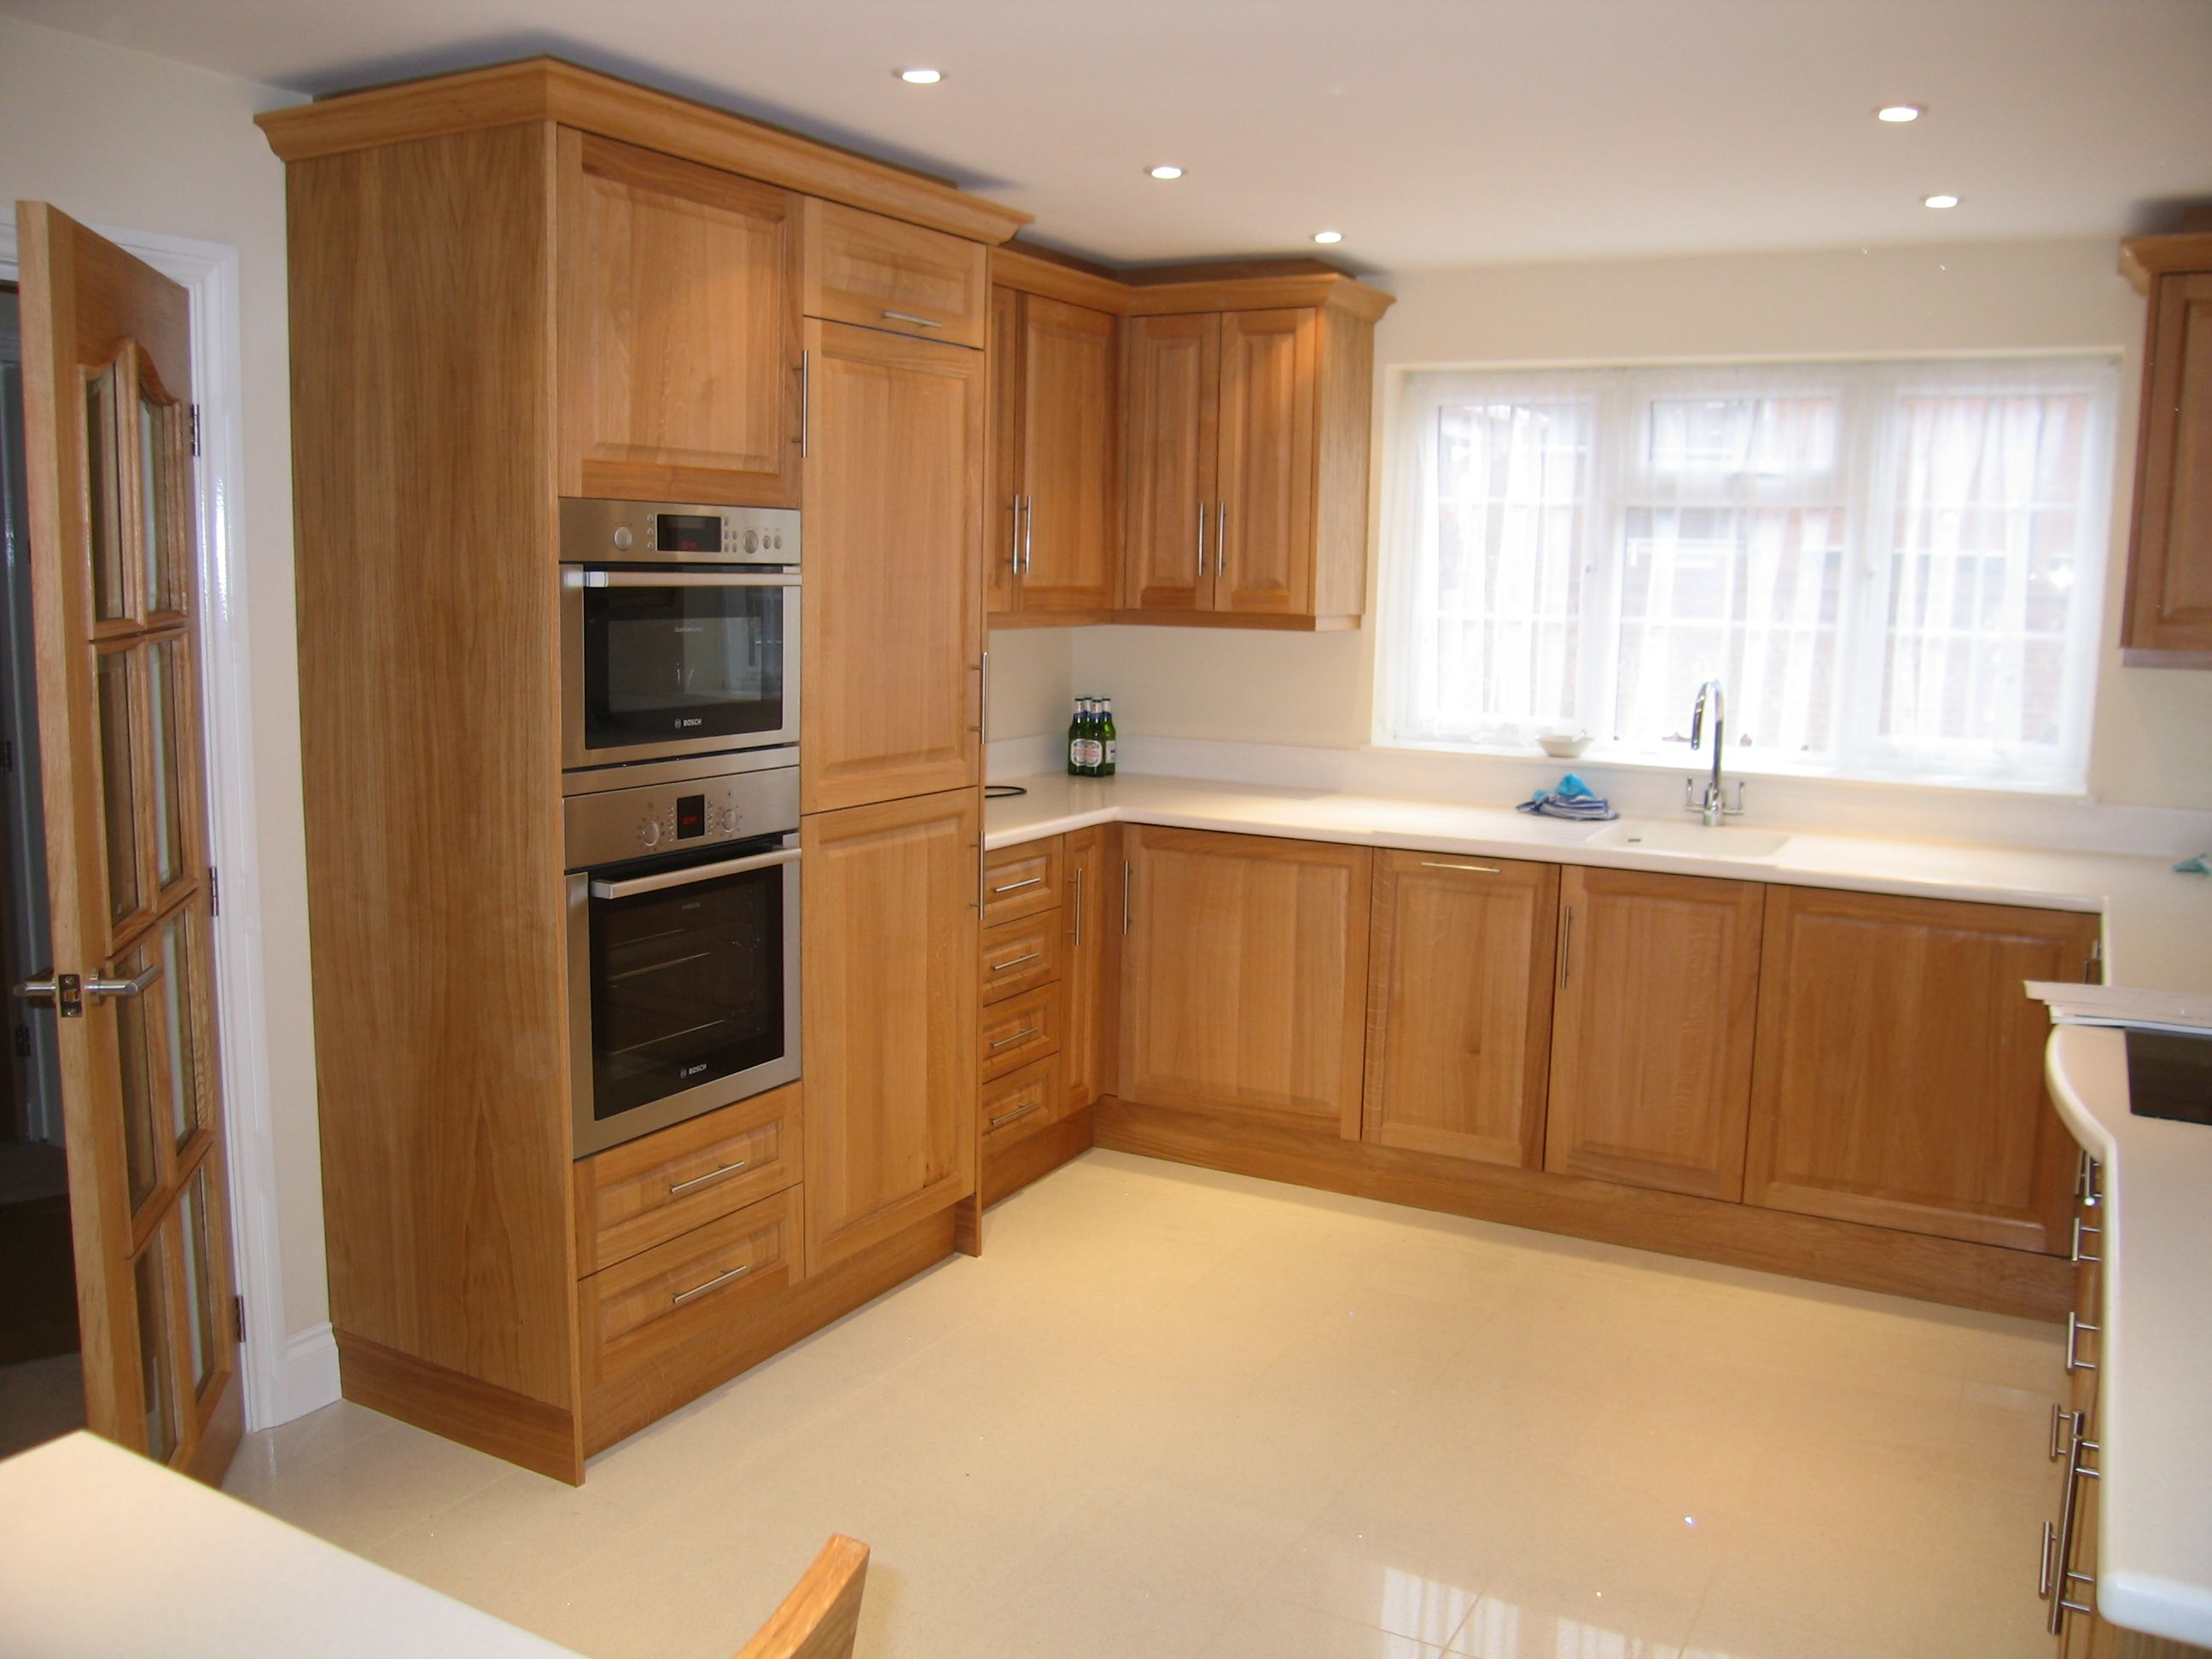 Another Classic Oak Kitchen Brought Up To Date With The Clean Lines Of A  Corian Worktop, Complete With Fabricated Sink. Take A Look At Our Website  For More ...